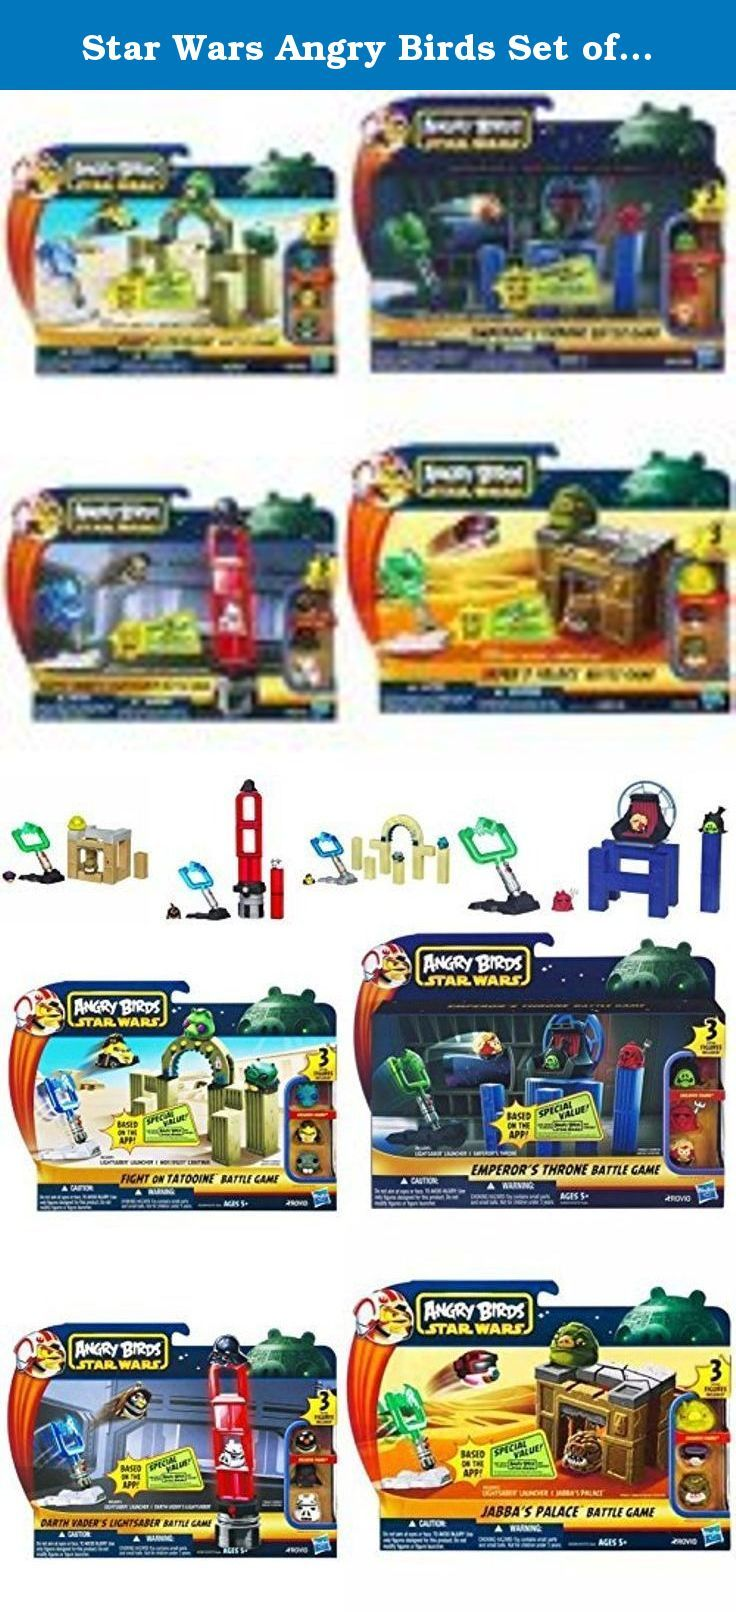 Star Wars Angry Birds Set of 4 Battle Games. Includes Star Wars Angry Birds Emperor's Throne Room Battle Game Star Wars Jabba's Palace Battle Game Star Wars Darth Vader's Lightsaber Battle Game Angry Birds Star Wars Fight On Tatooine Battle Game.